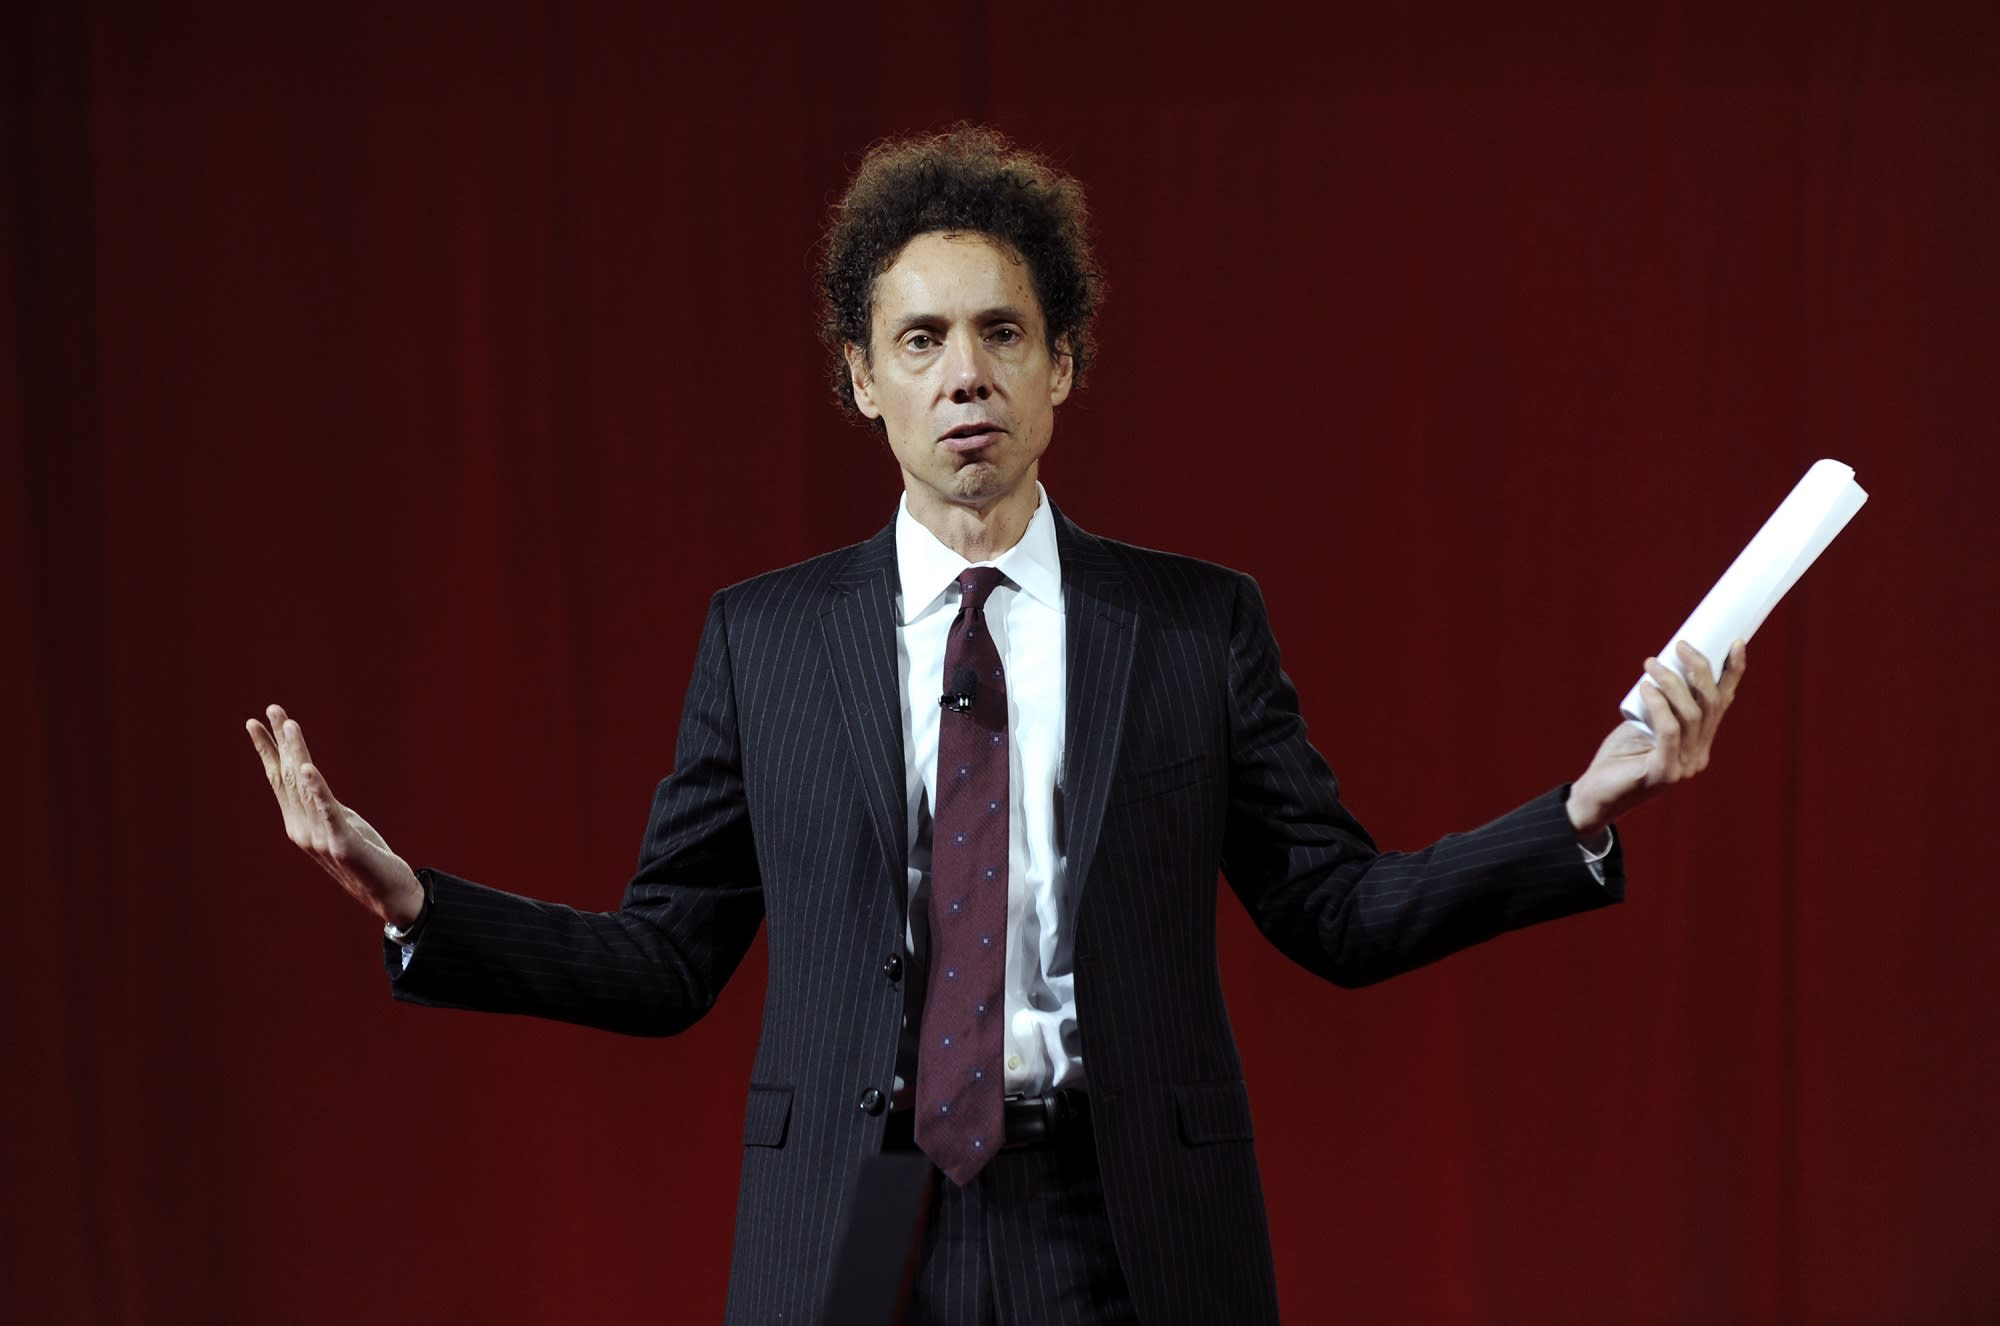 Malcolm Gladwell: Americans spend too much on 'meaningless education'